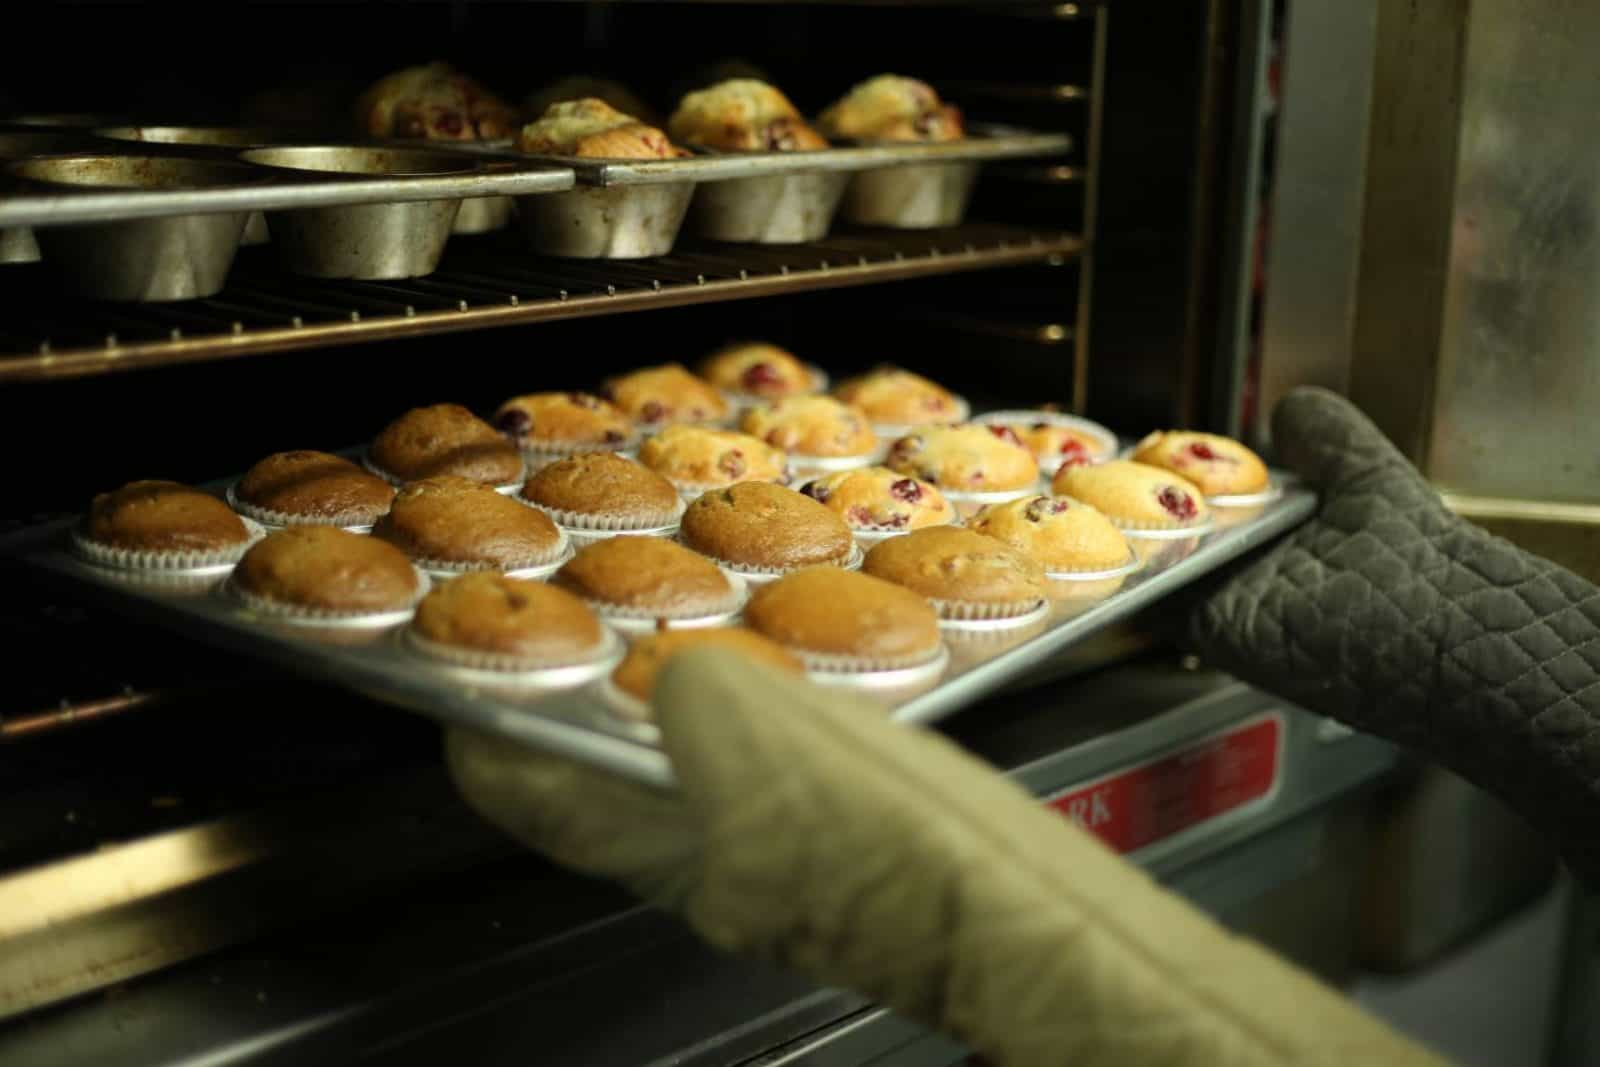 Coping with a Broken Oven, temporary oven, how to cope with a broken oven